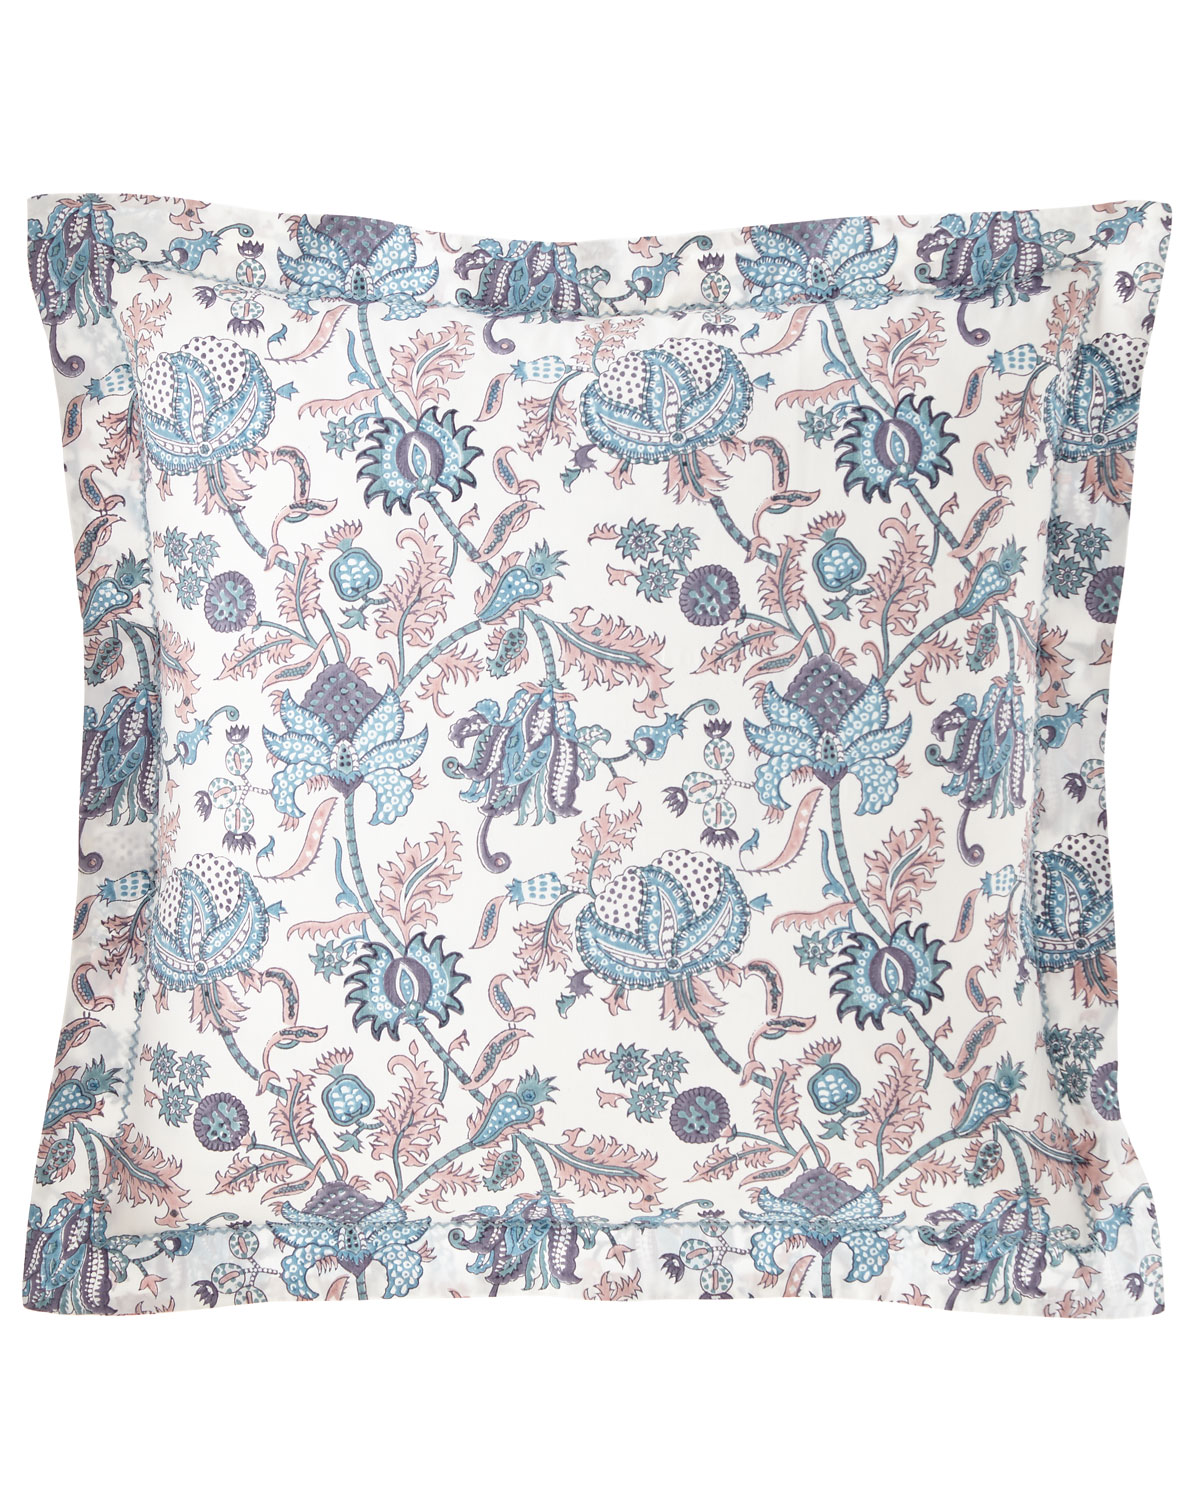 European Pillowcases Online Roller Rabbit Amanda European Pillowcase Set Neiman Marcus